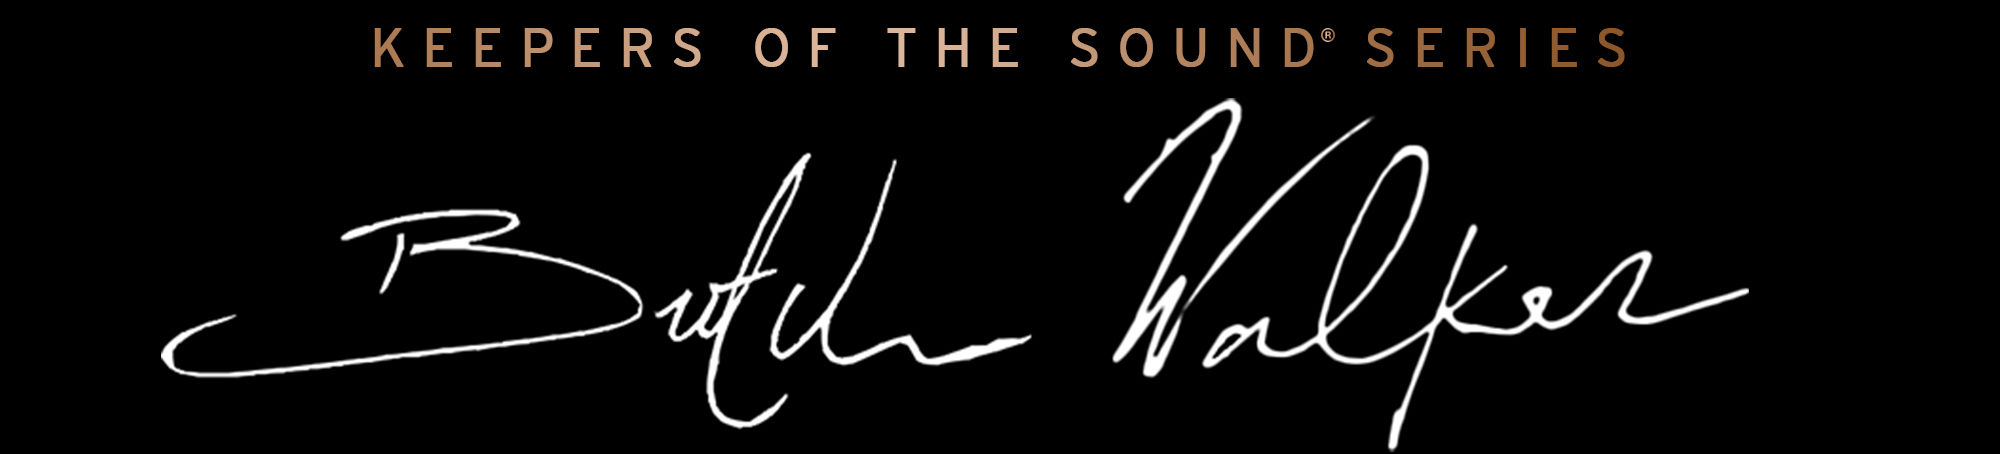 Kots Butch Walker Signature